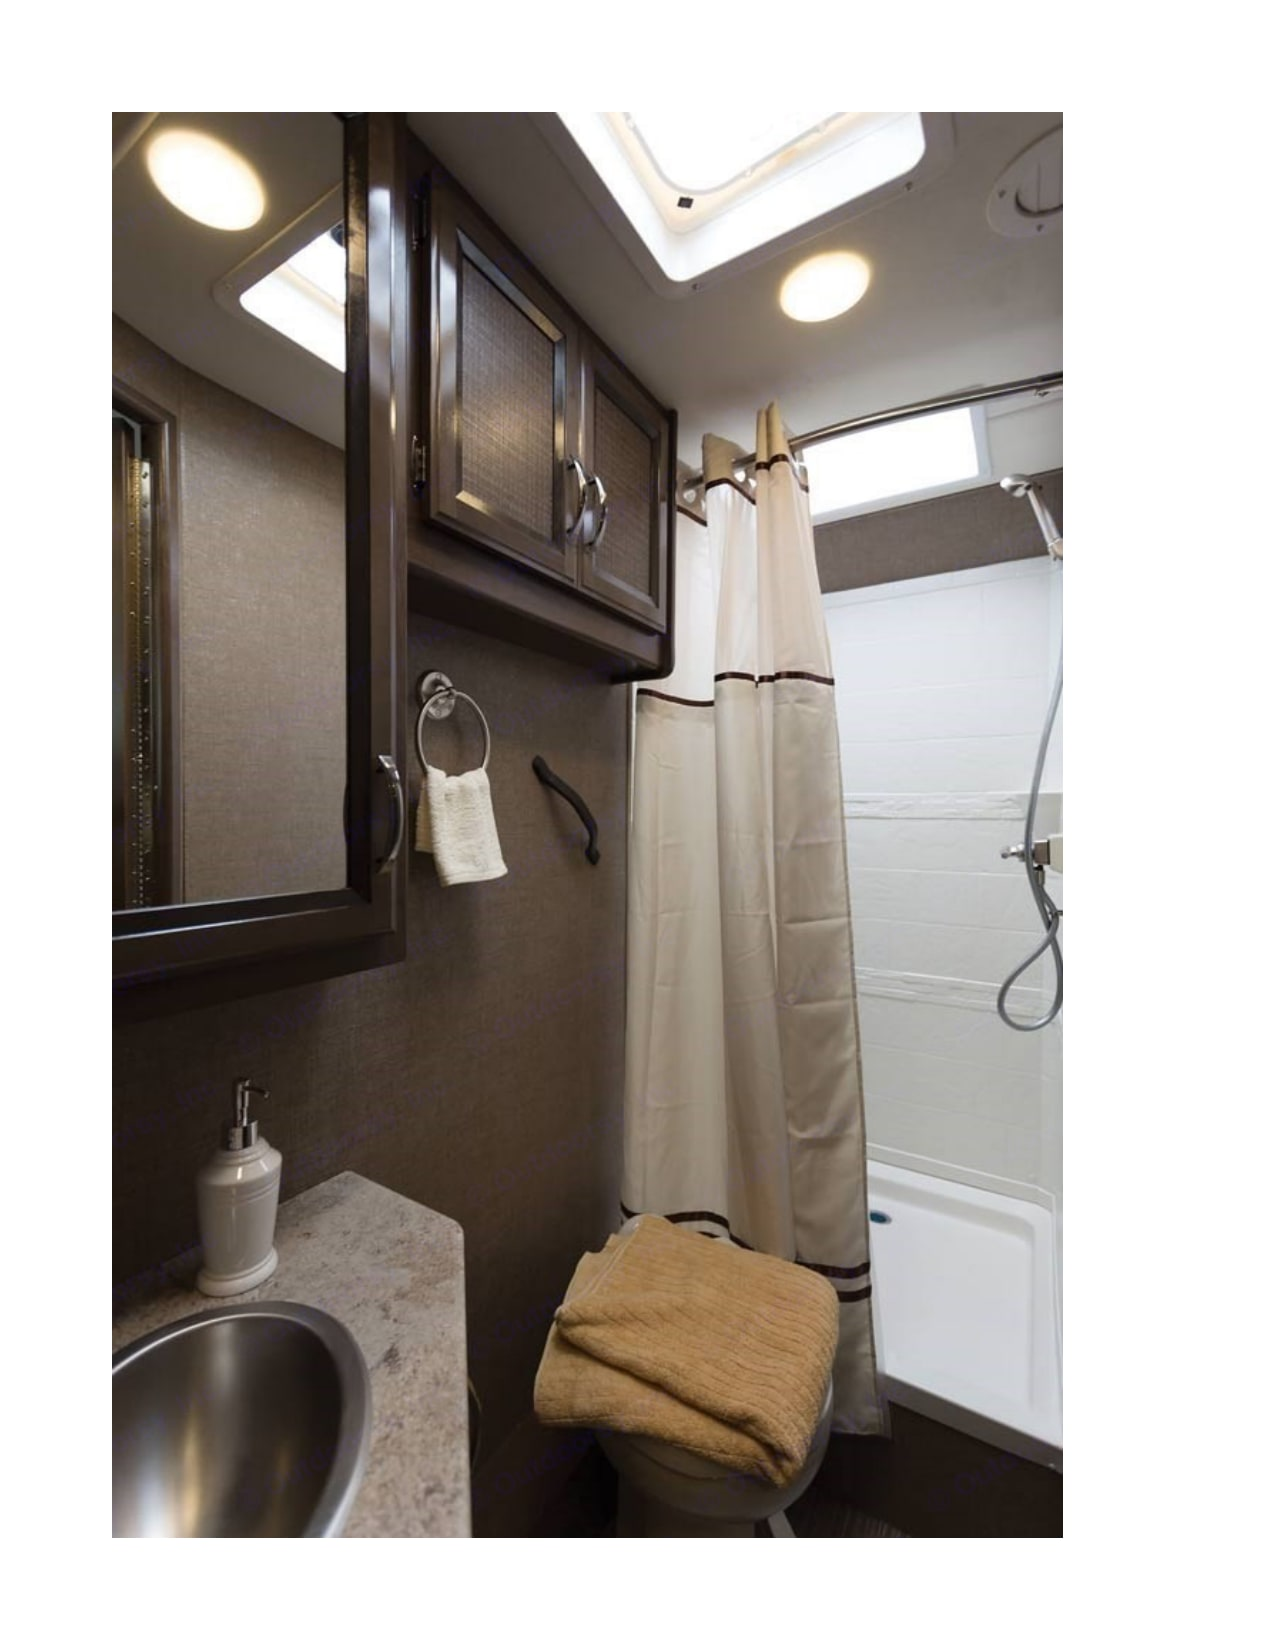 Bathroom, shower, toilet, sink, dressing area (double doors open into aisle, hallway, private area with access to wardrobe closet) NEAT!. Thor Motor Coach Axis 2017